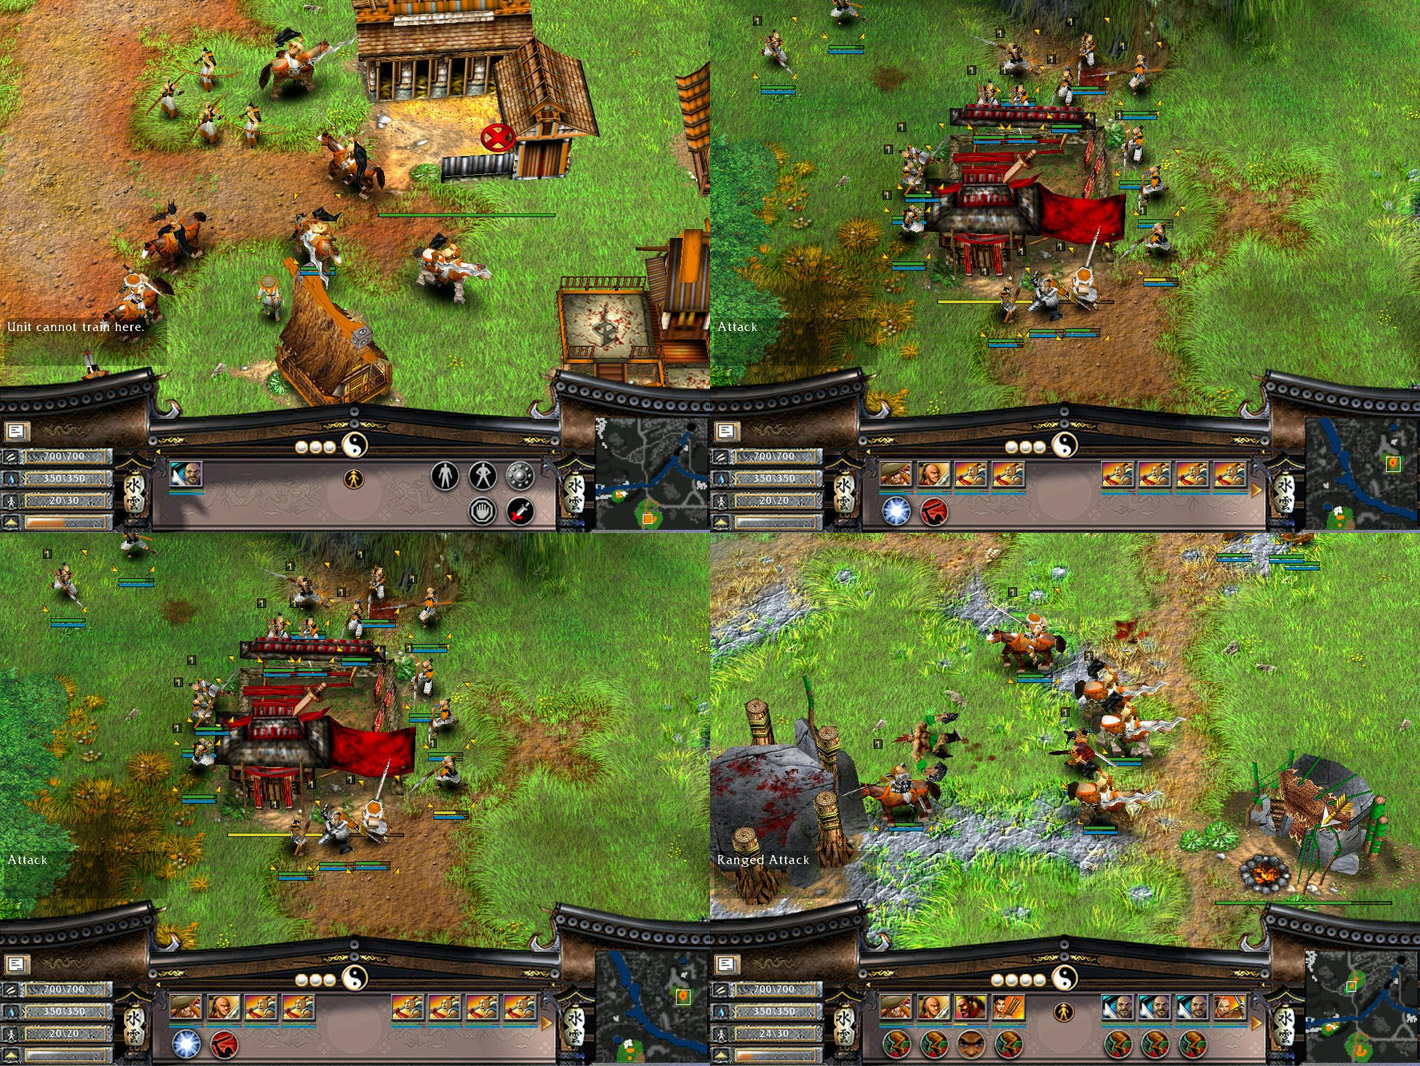 Battle Realms Steam Version Will Launch On December 3 With Online